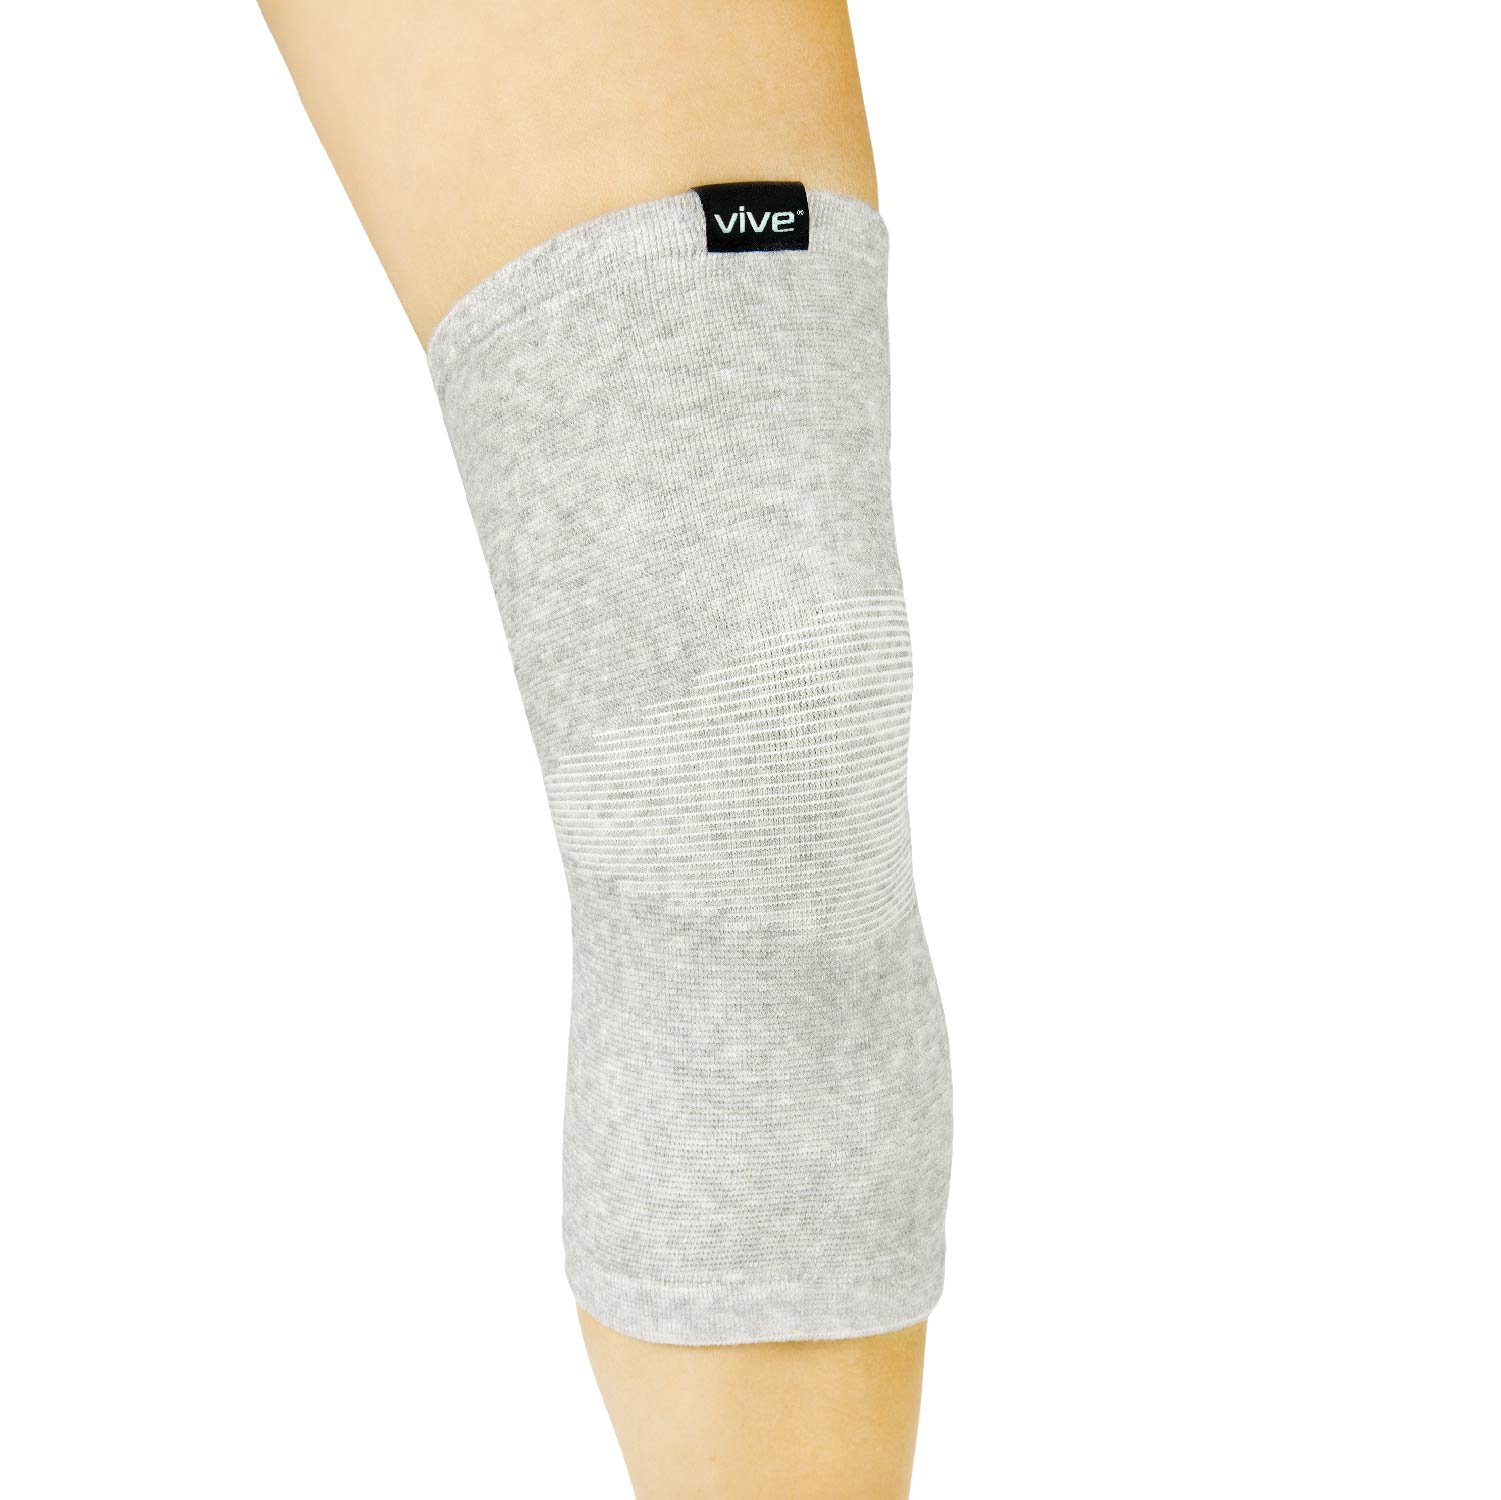 Knee Sleeve by Vive (Pair) Bamboo Charcoal Elastic Compression Support for Arthritis, Tendonitis, Running & Athletics for Men & Women (Gray, Medium)